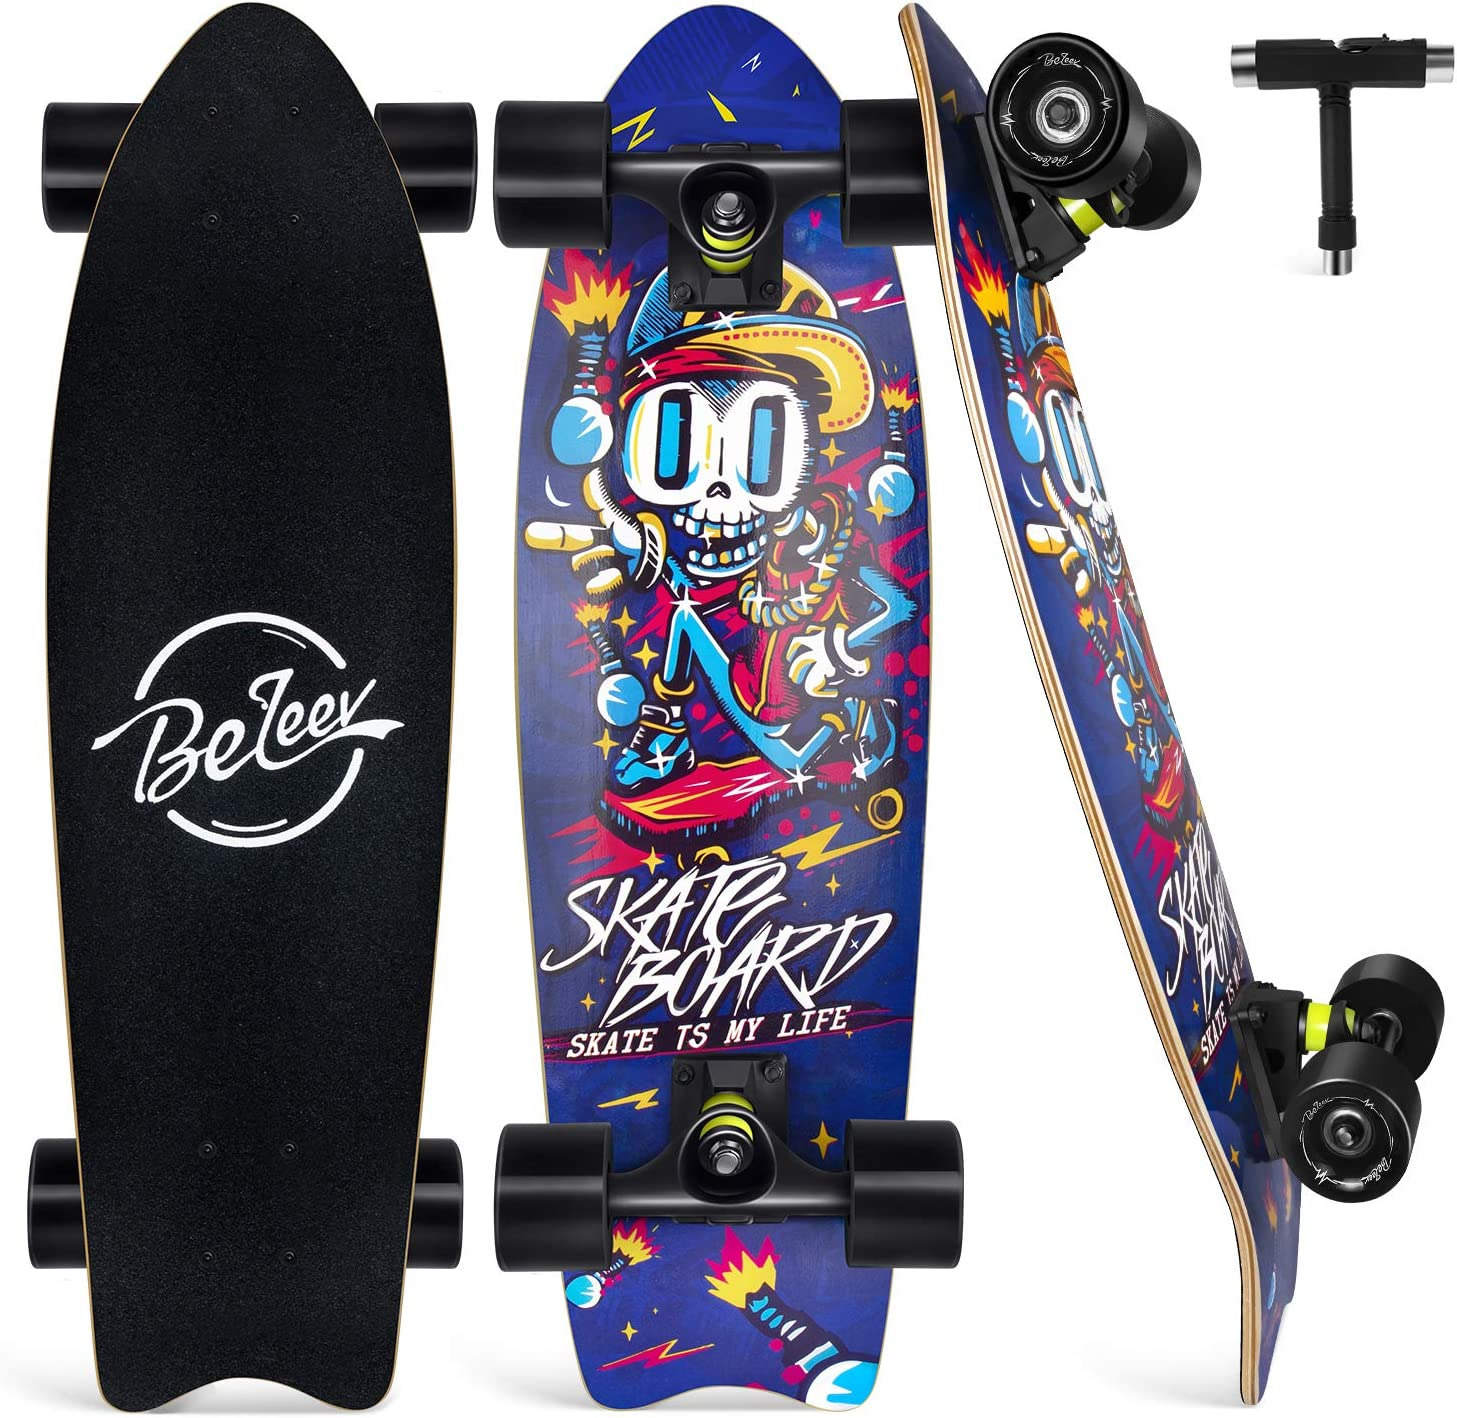 27 Inch Complete Skateboard for Kids Teens Adults 7 Layer Canadian Maple Double Kick Deck Concave Trick Skateboard Beleev Cruiser Skateboards for Beginners